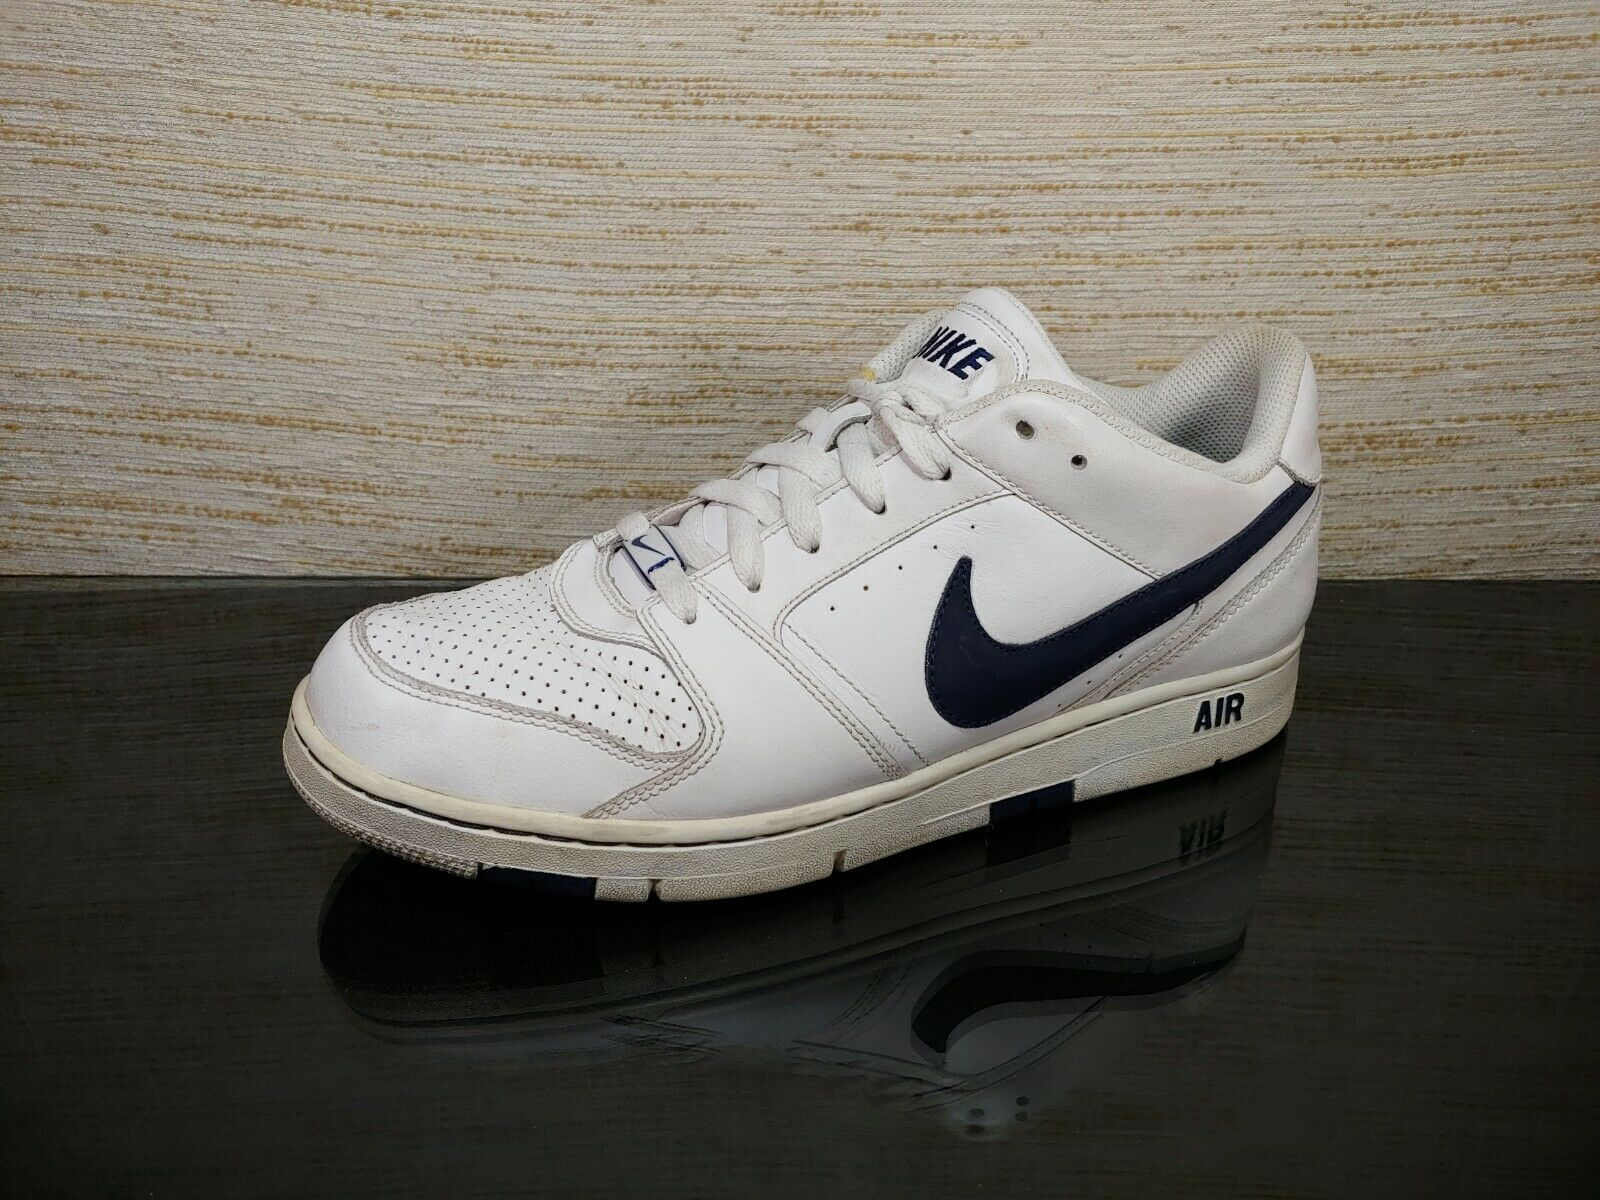 NIKE AIR PRESTIGE 11 (2) Men's Sz 10 White  Navy Leather Athletic Sneaker shoes